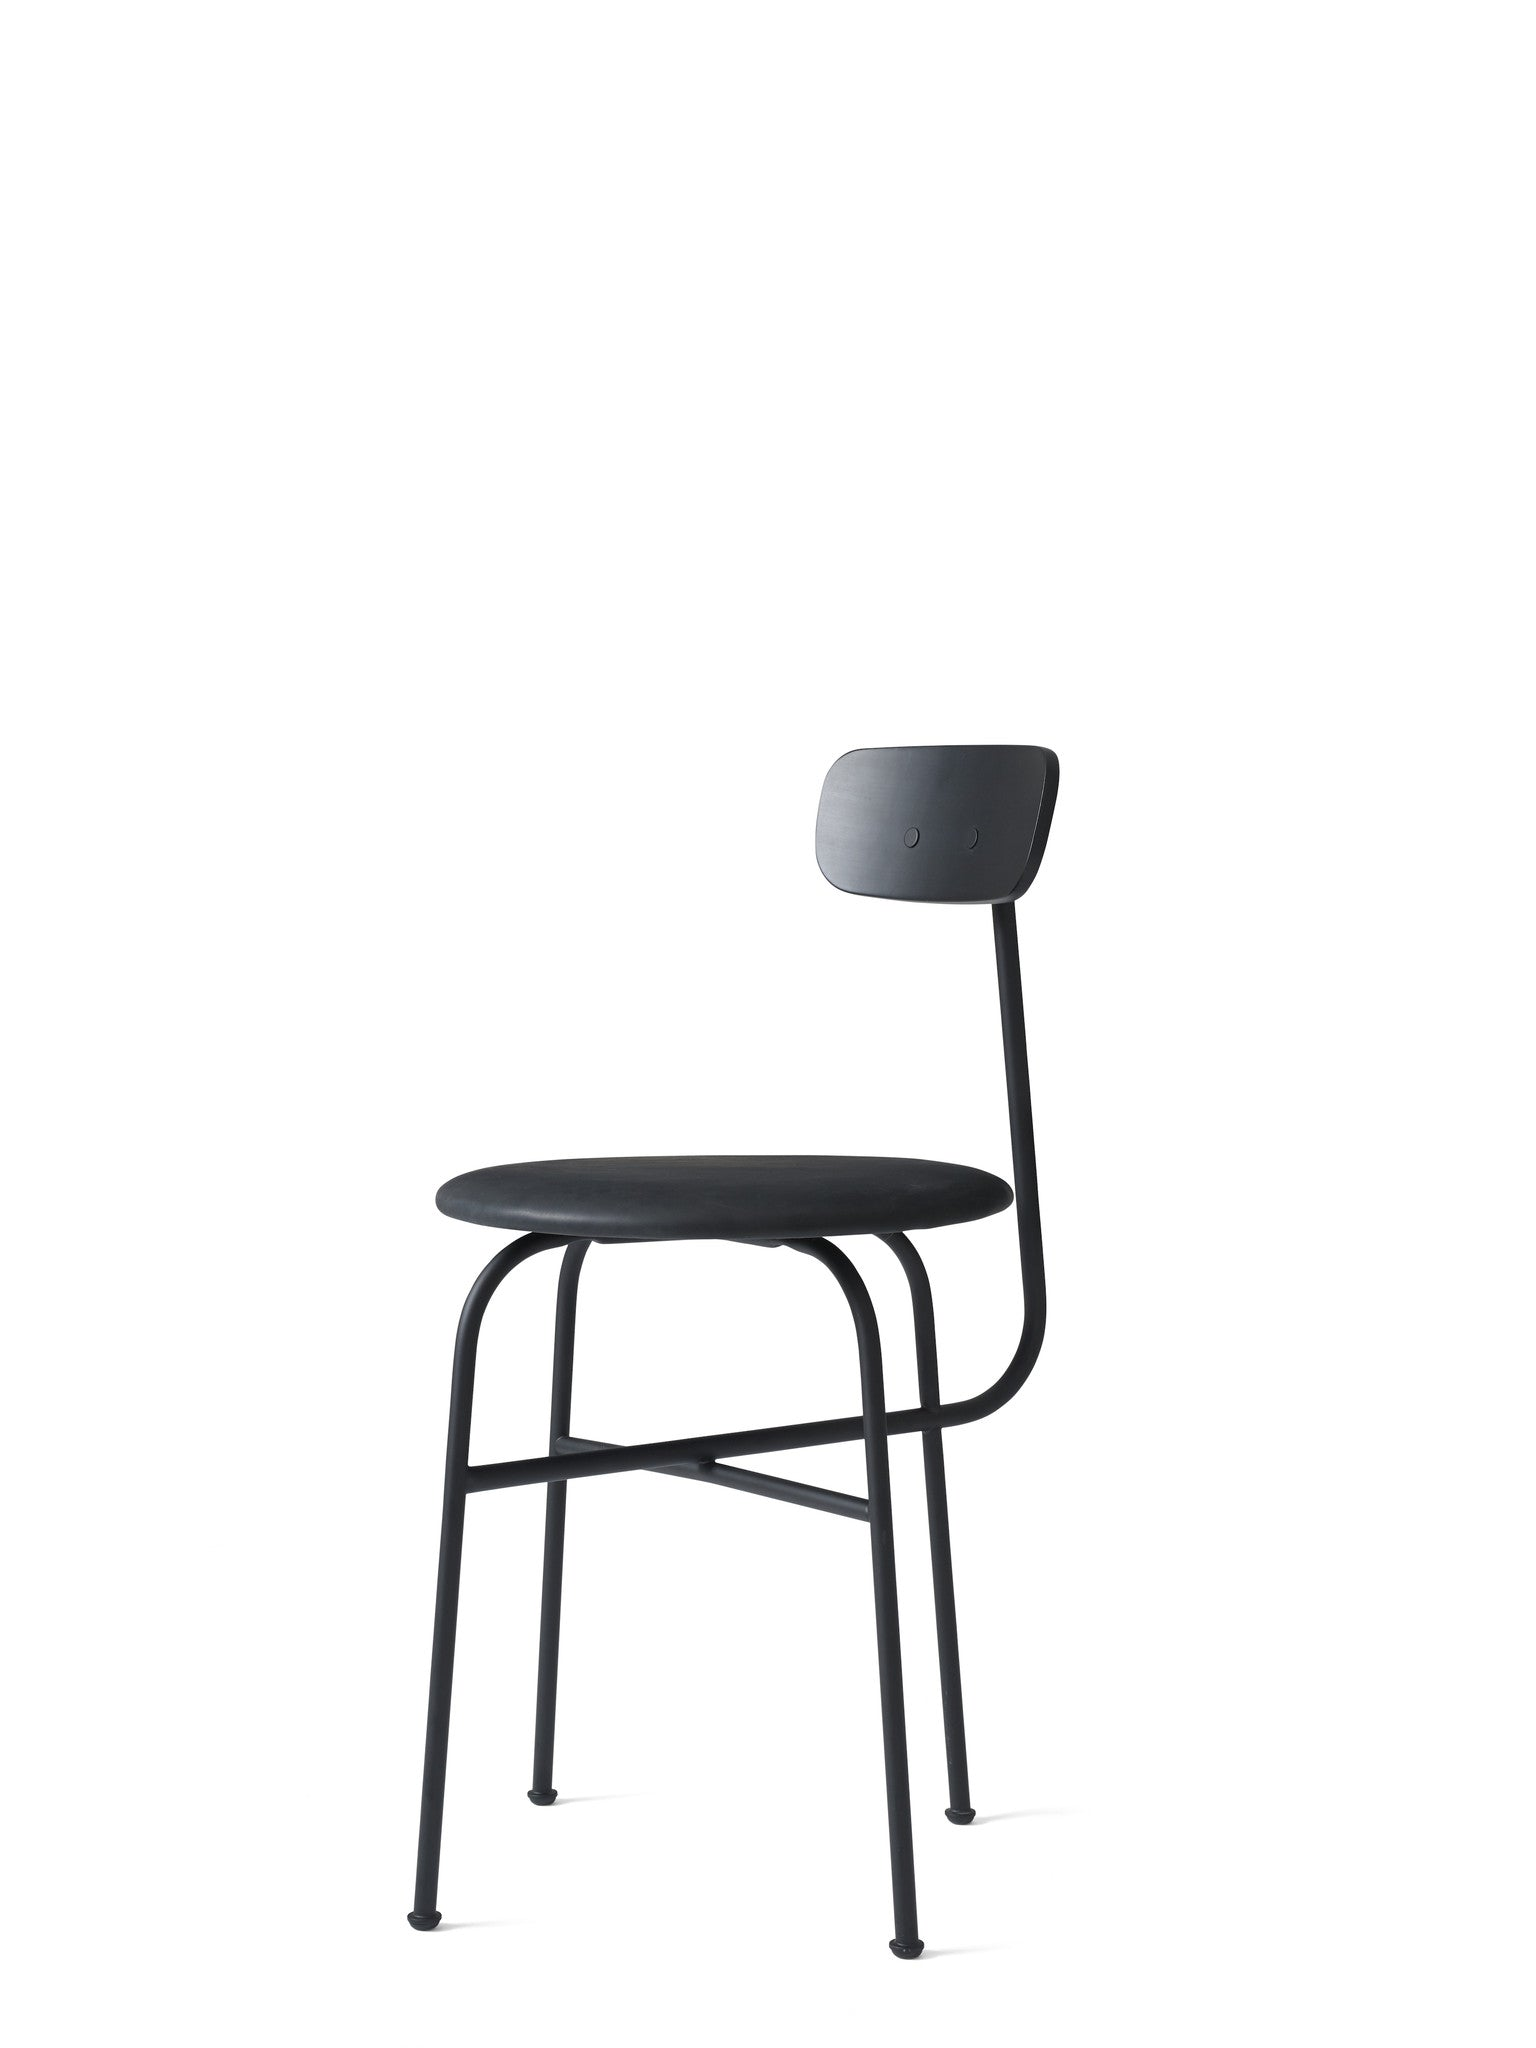 Afteroom Dining Chair 4 - Læder, Sort fra Menu